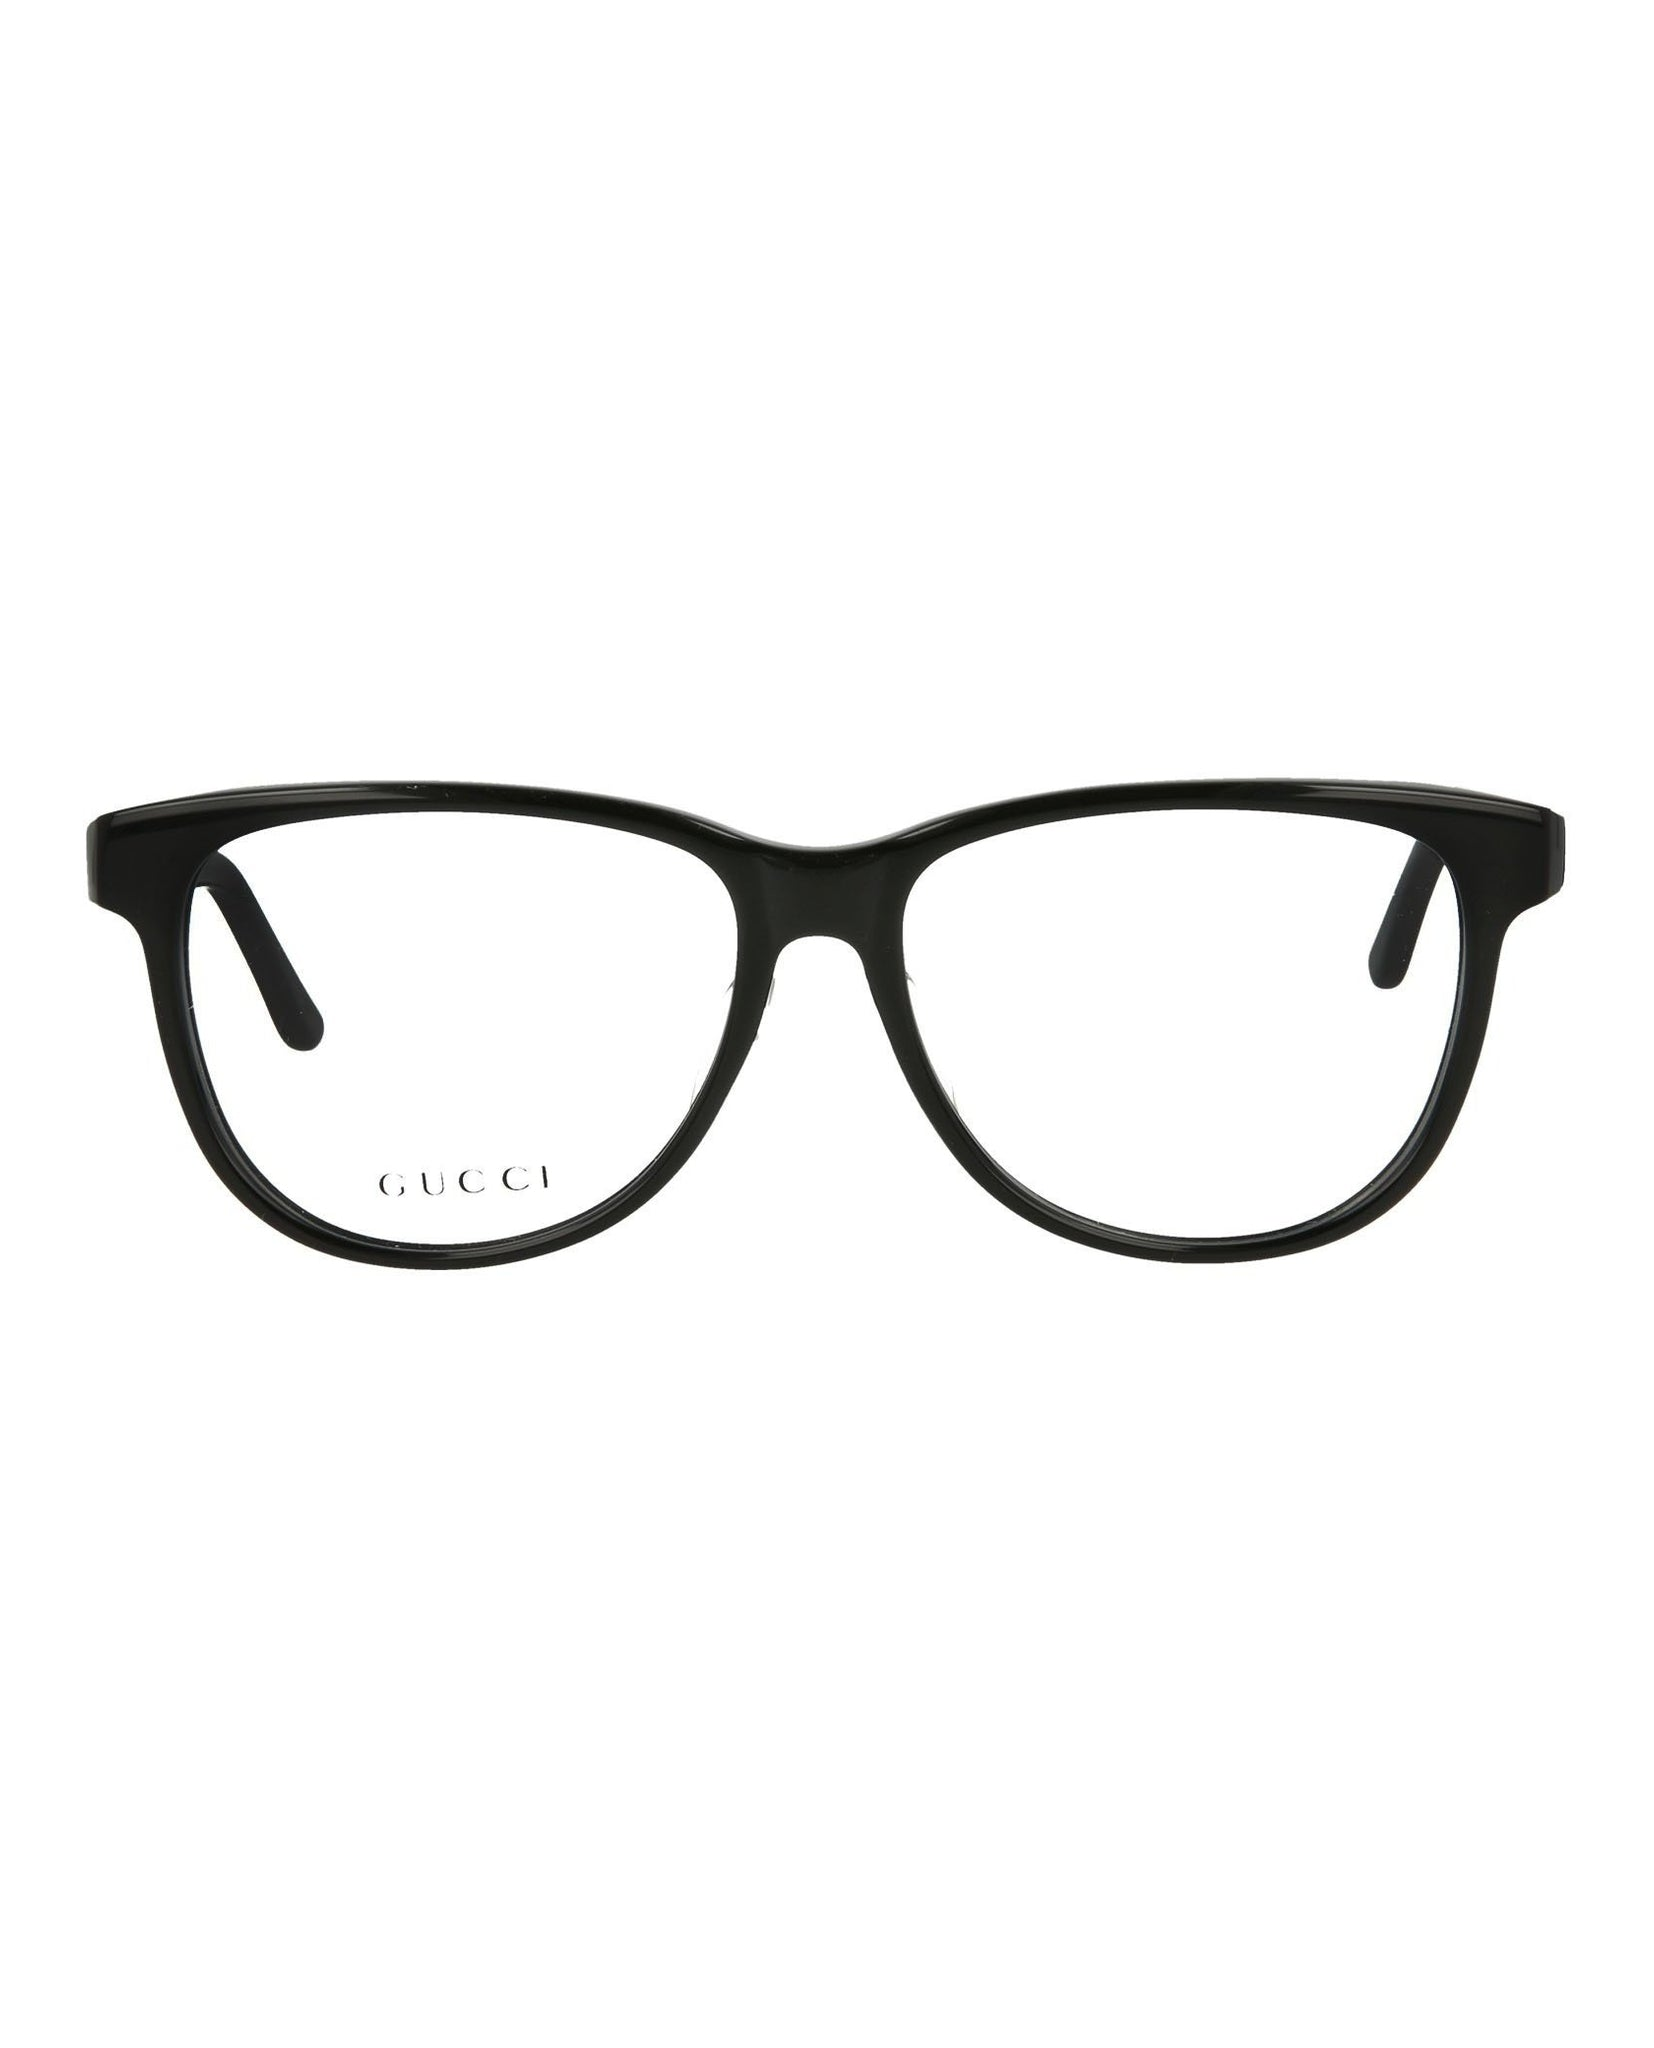 bc728392332 Gucci Unisex Round Oval Optical Frames